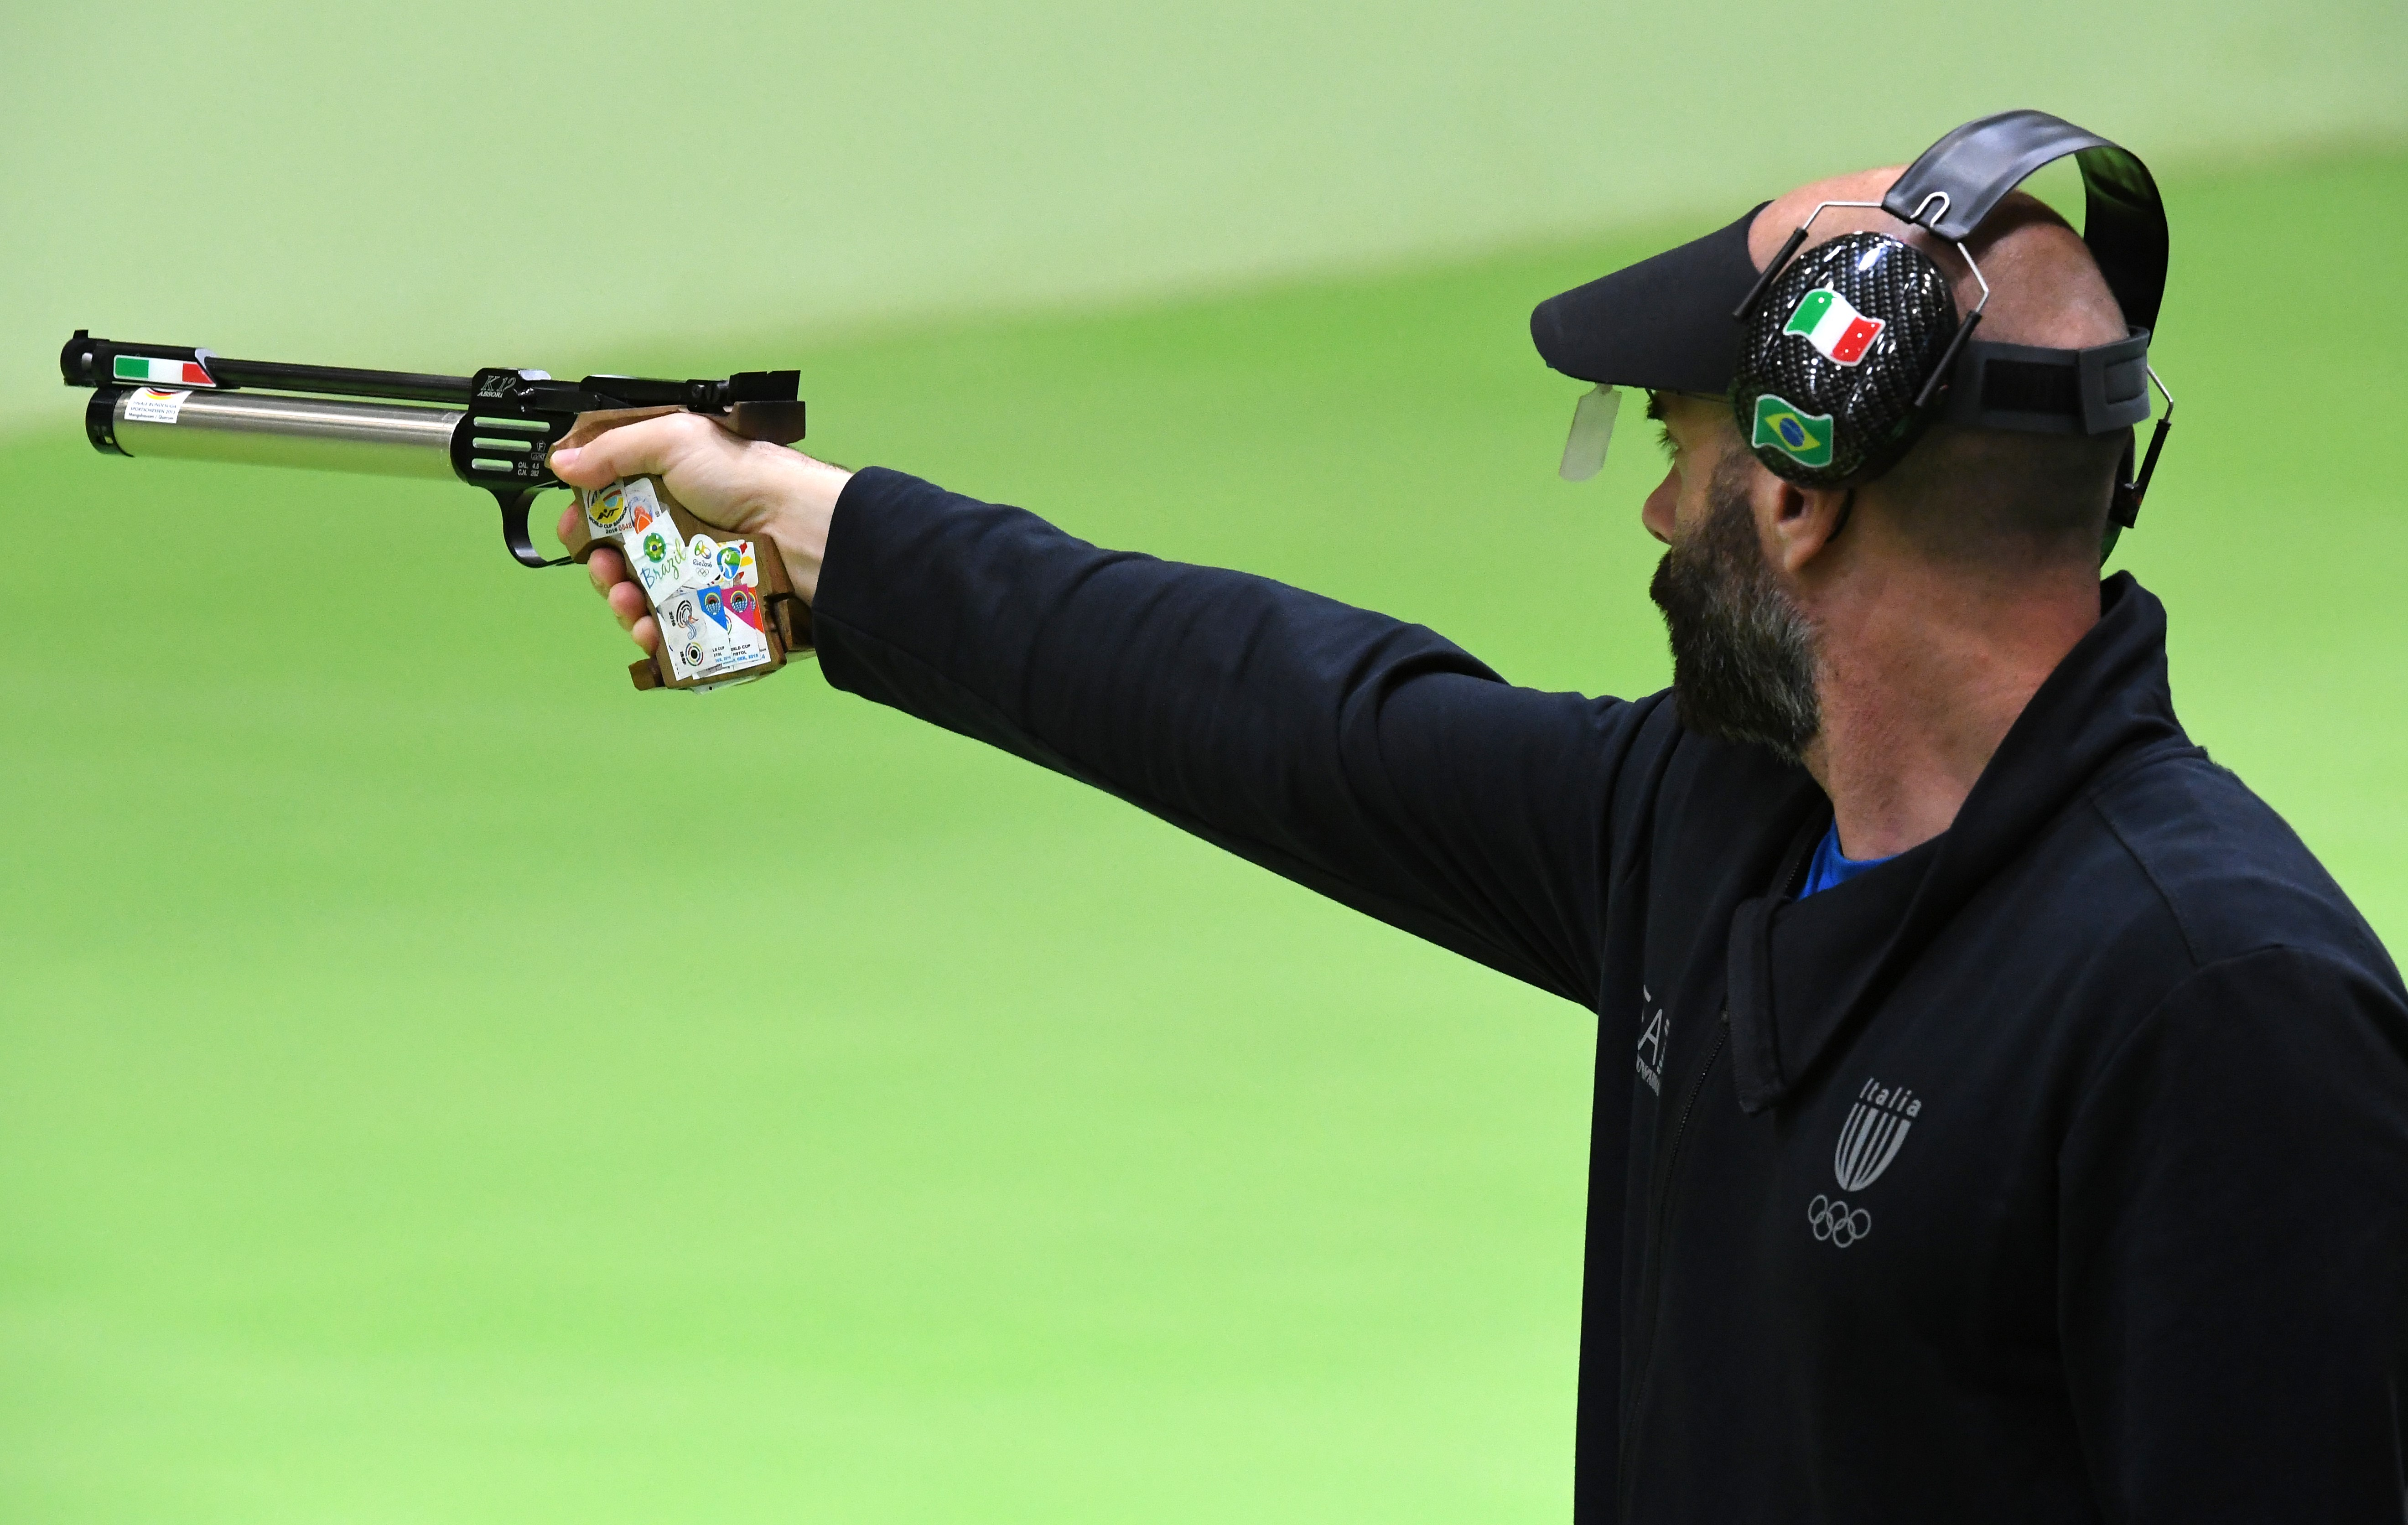 Live Stream Shooting Wallpaper: Olympics Shooting Live Stream: Watch Online